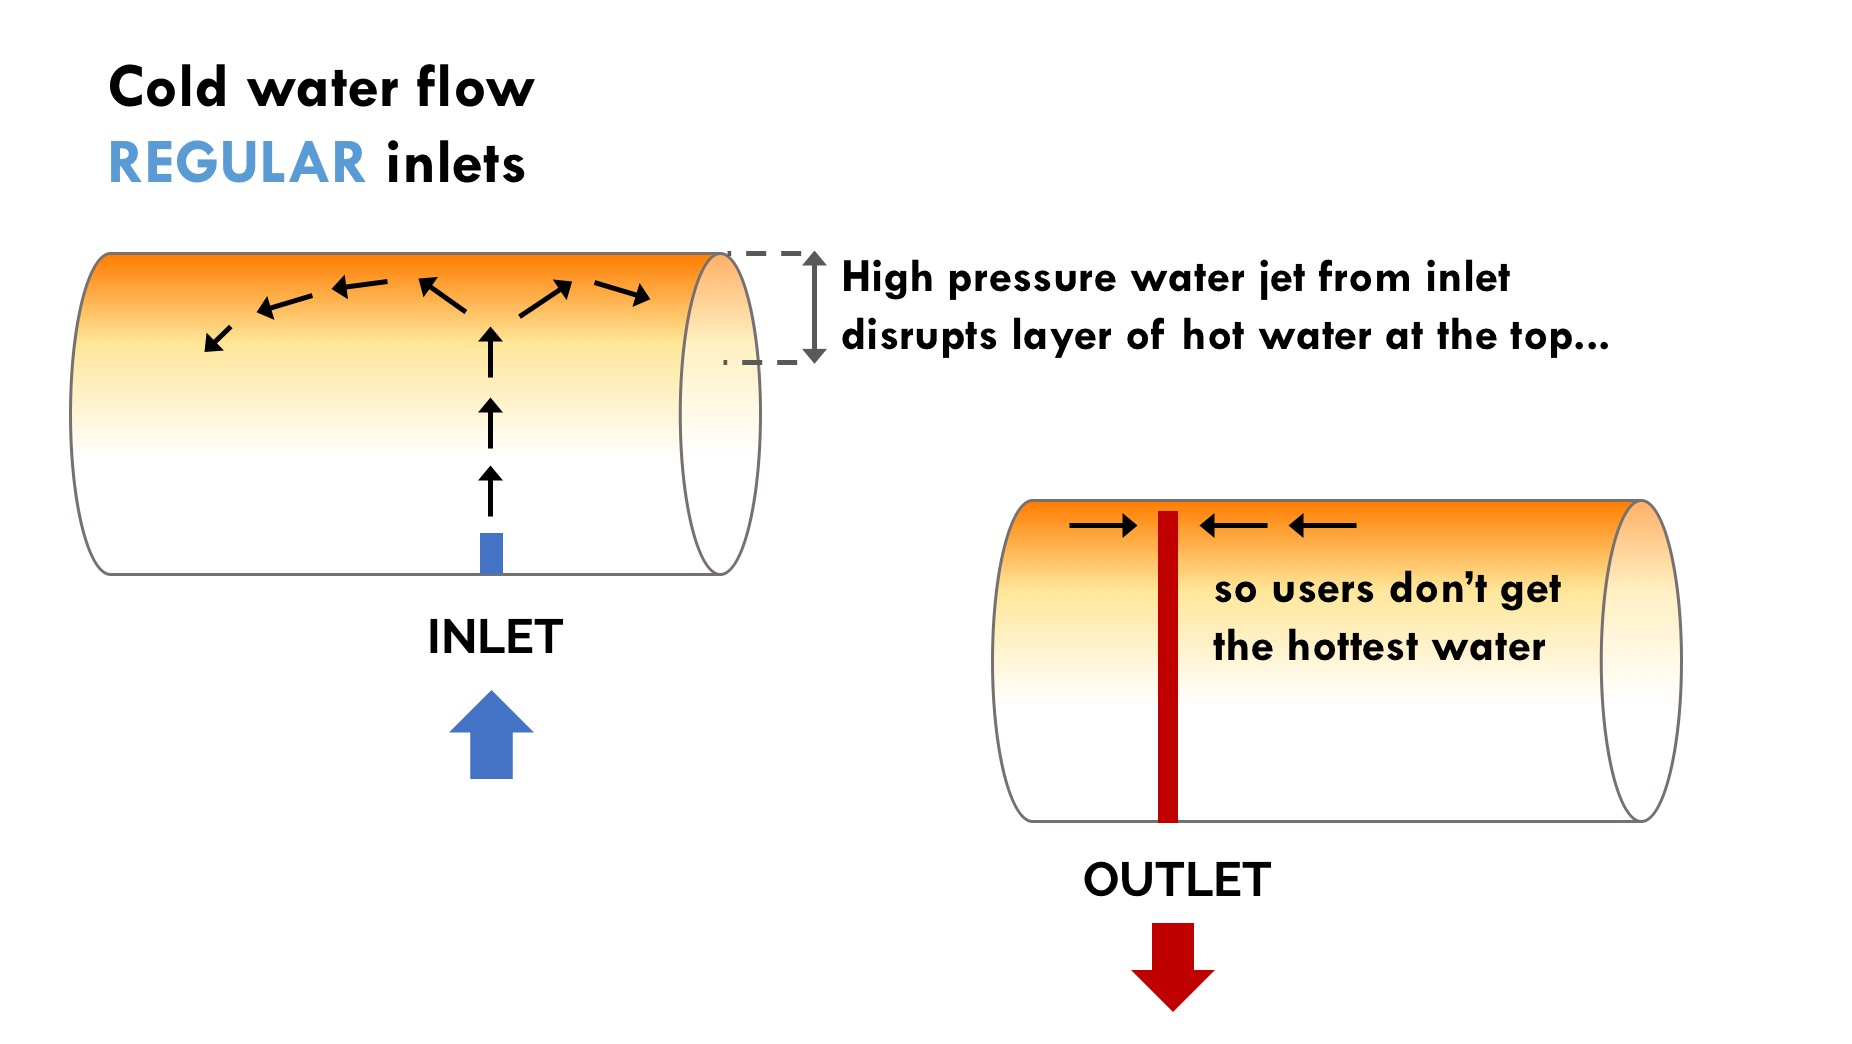 How regular water heater works - AOS Bath - Hot Water Bath Singapore